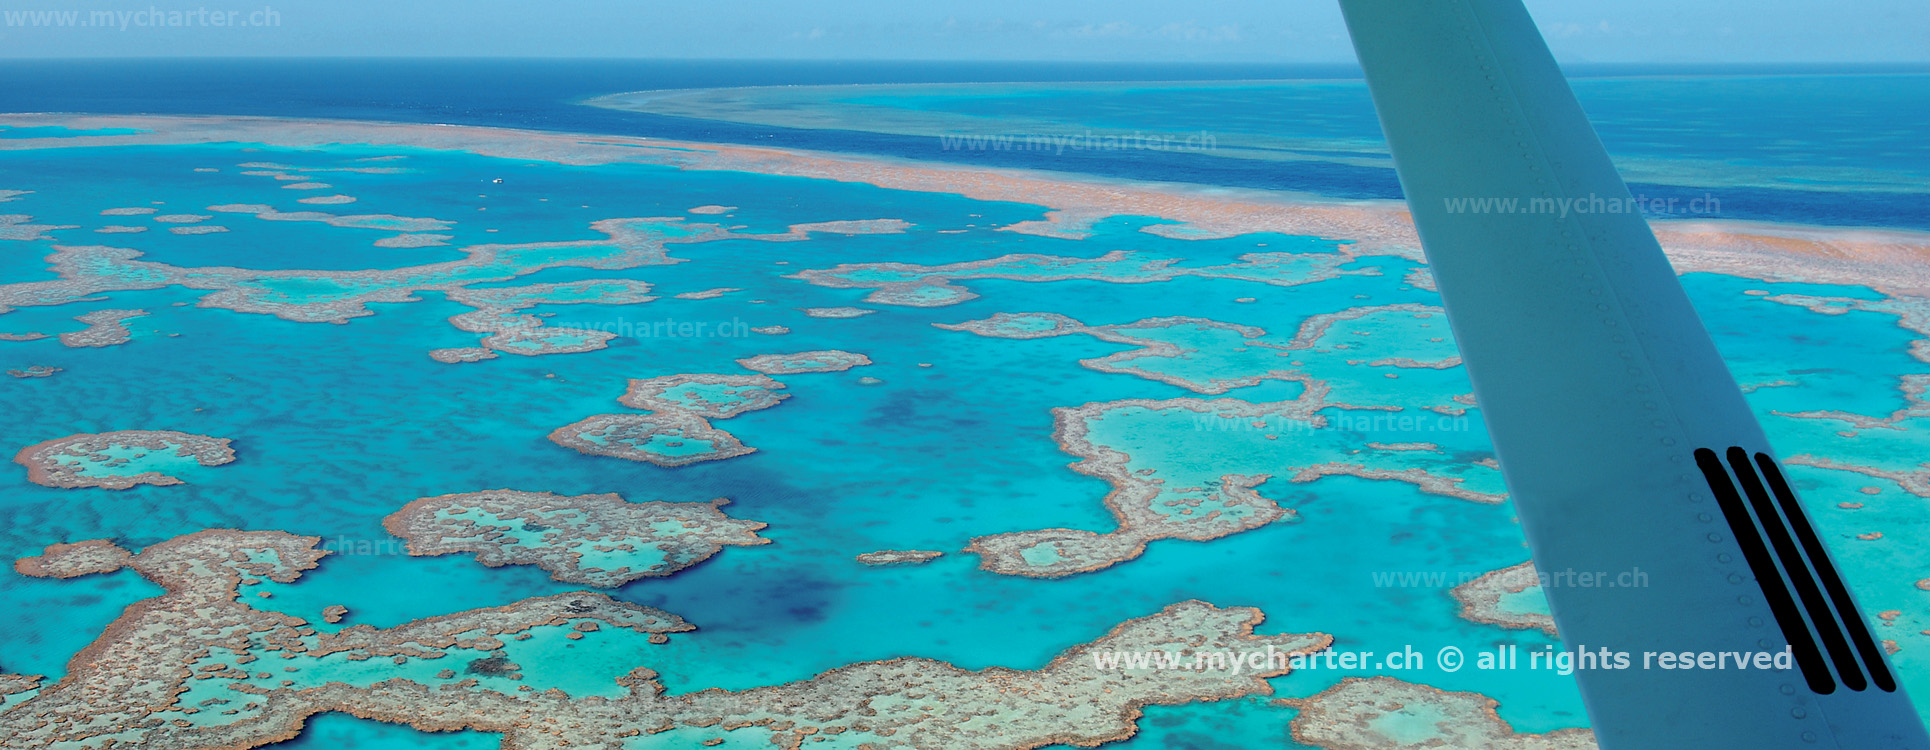 Yachtcharter Australien - Great Barrier Reef